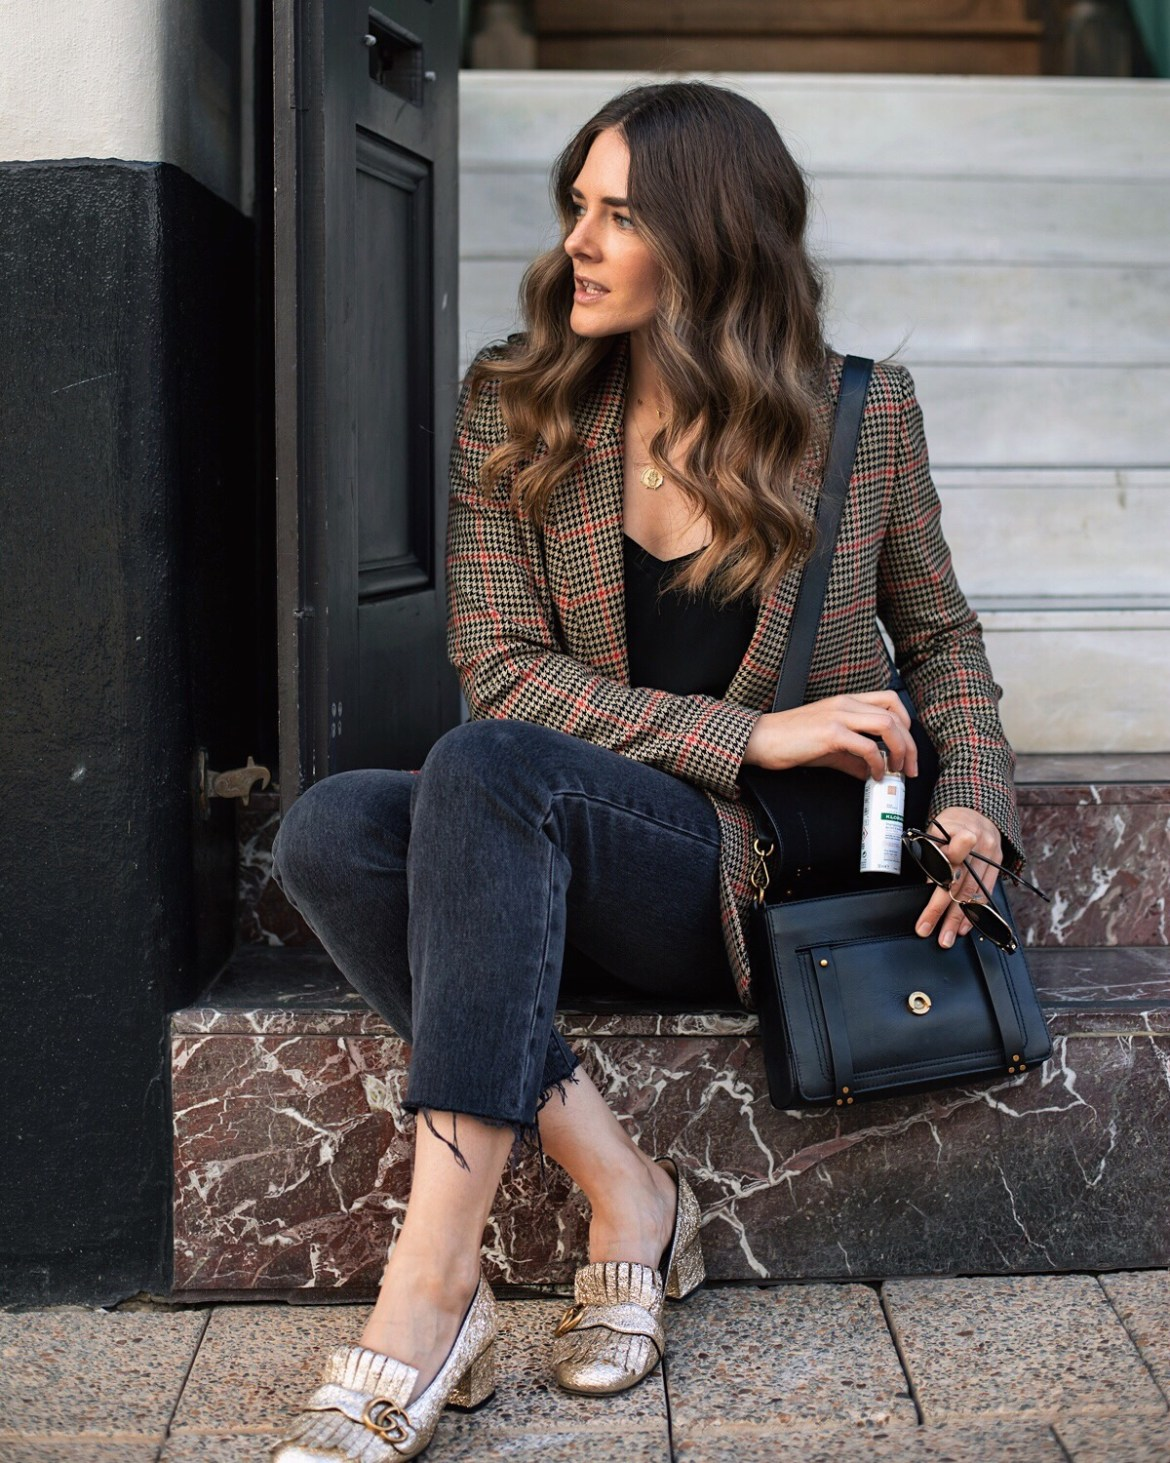 Gucci marmont shoes, check blazer outfit